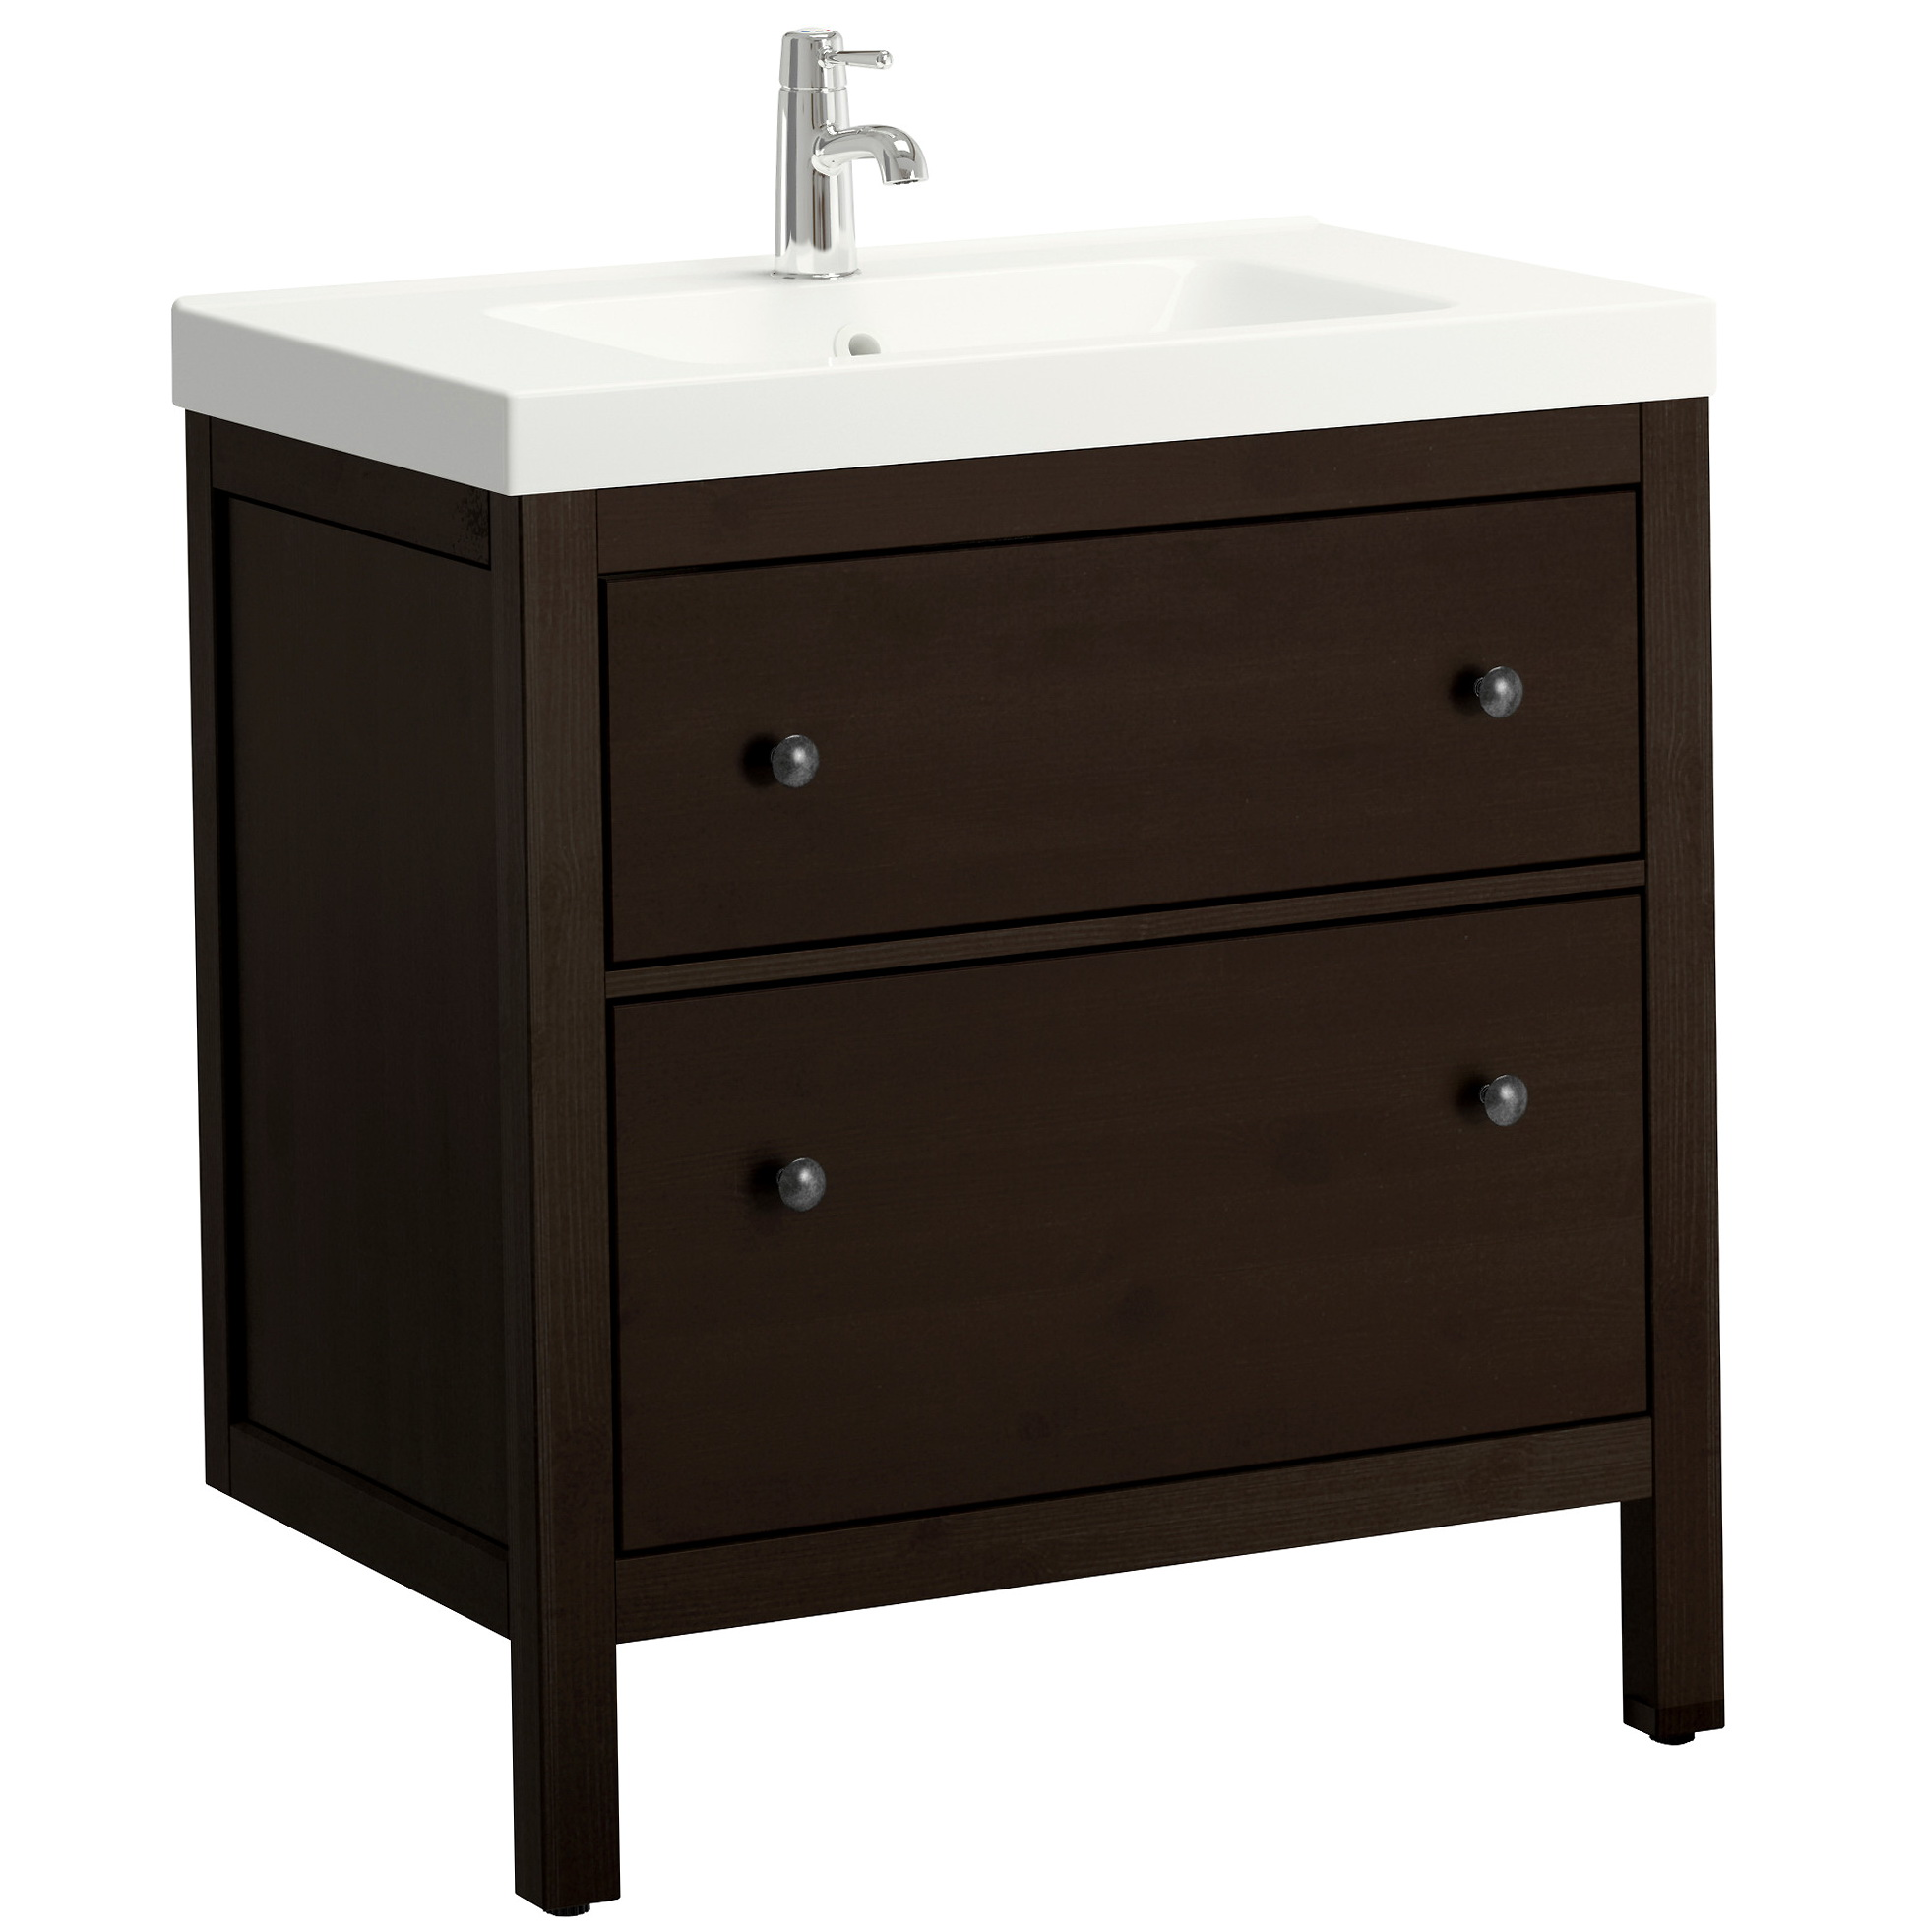 Ikea Bathroom Vanities Canada Home Design Ideas